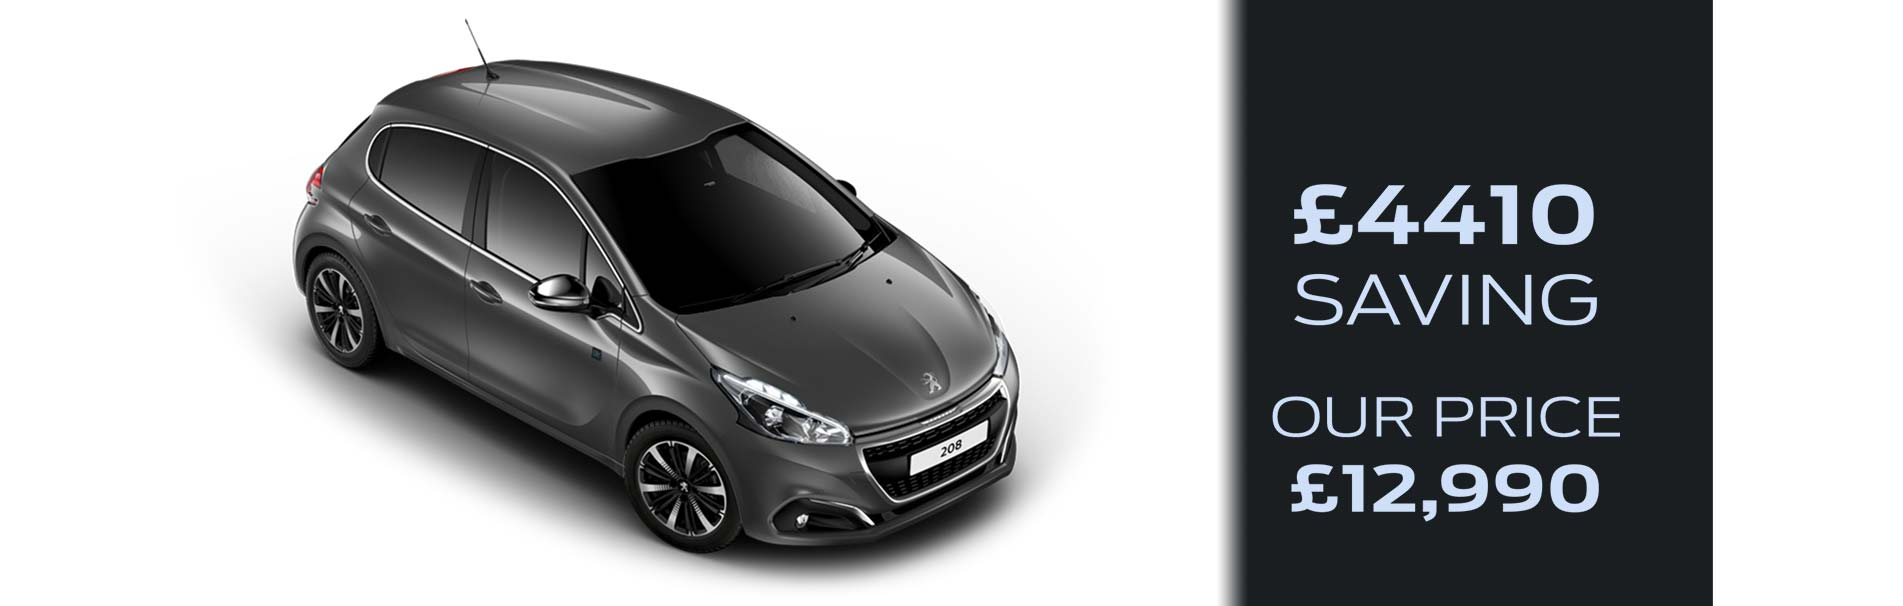 19-plate-peugeot-208-tech-edition-big-savings-sli